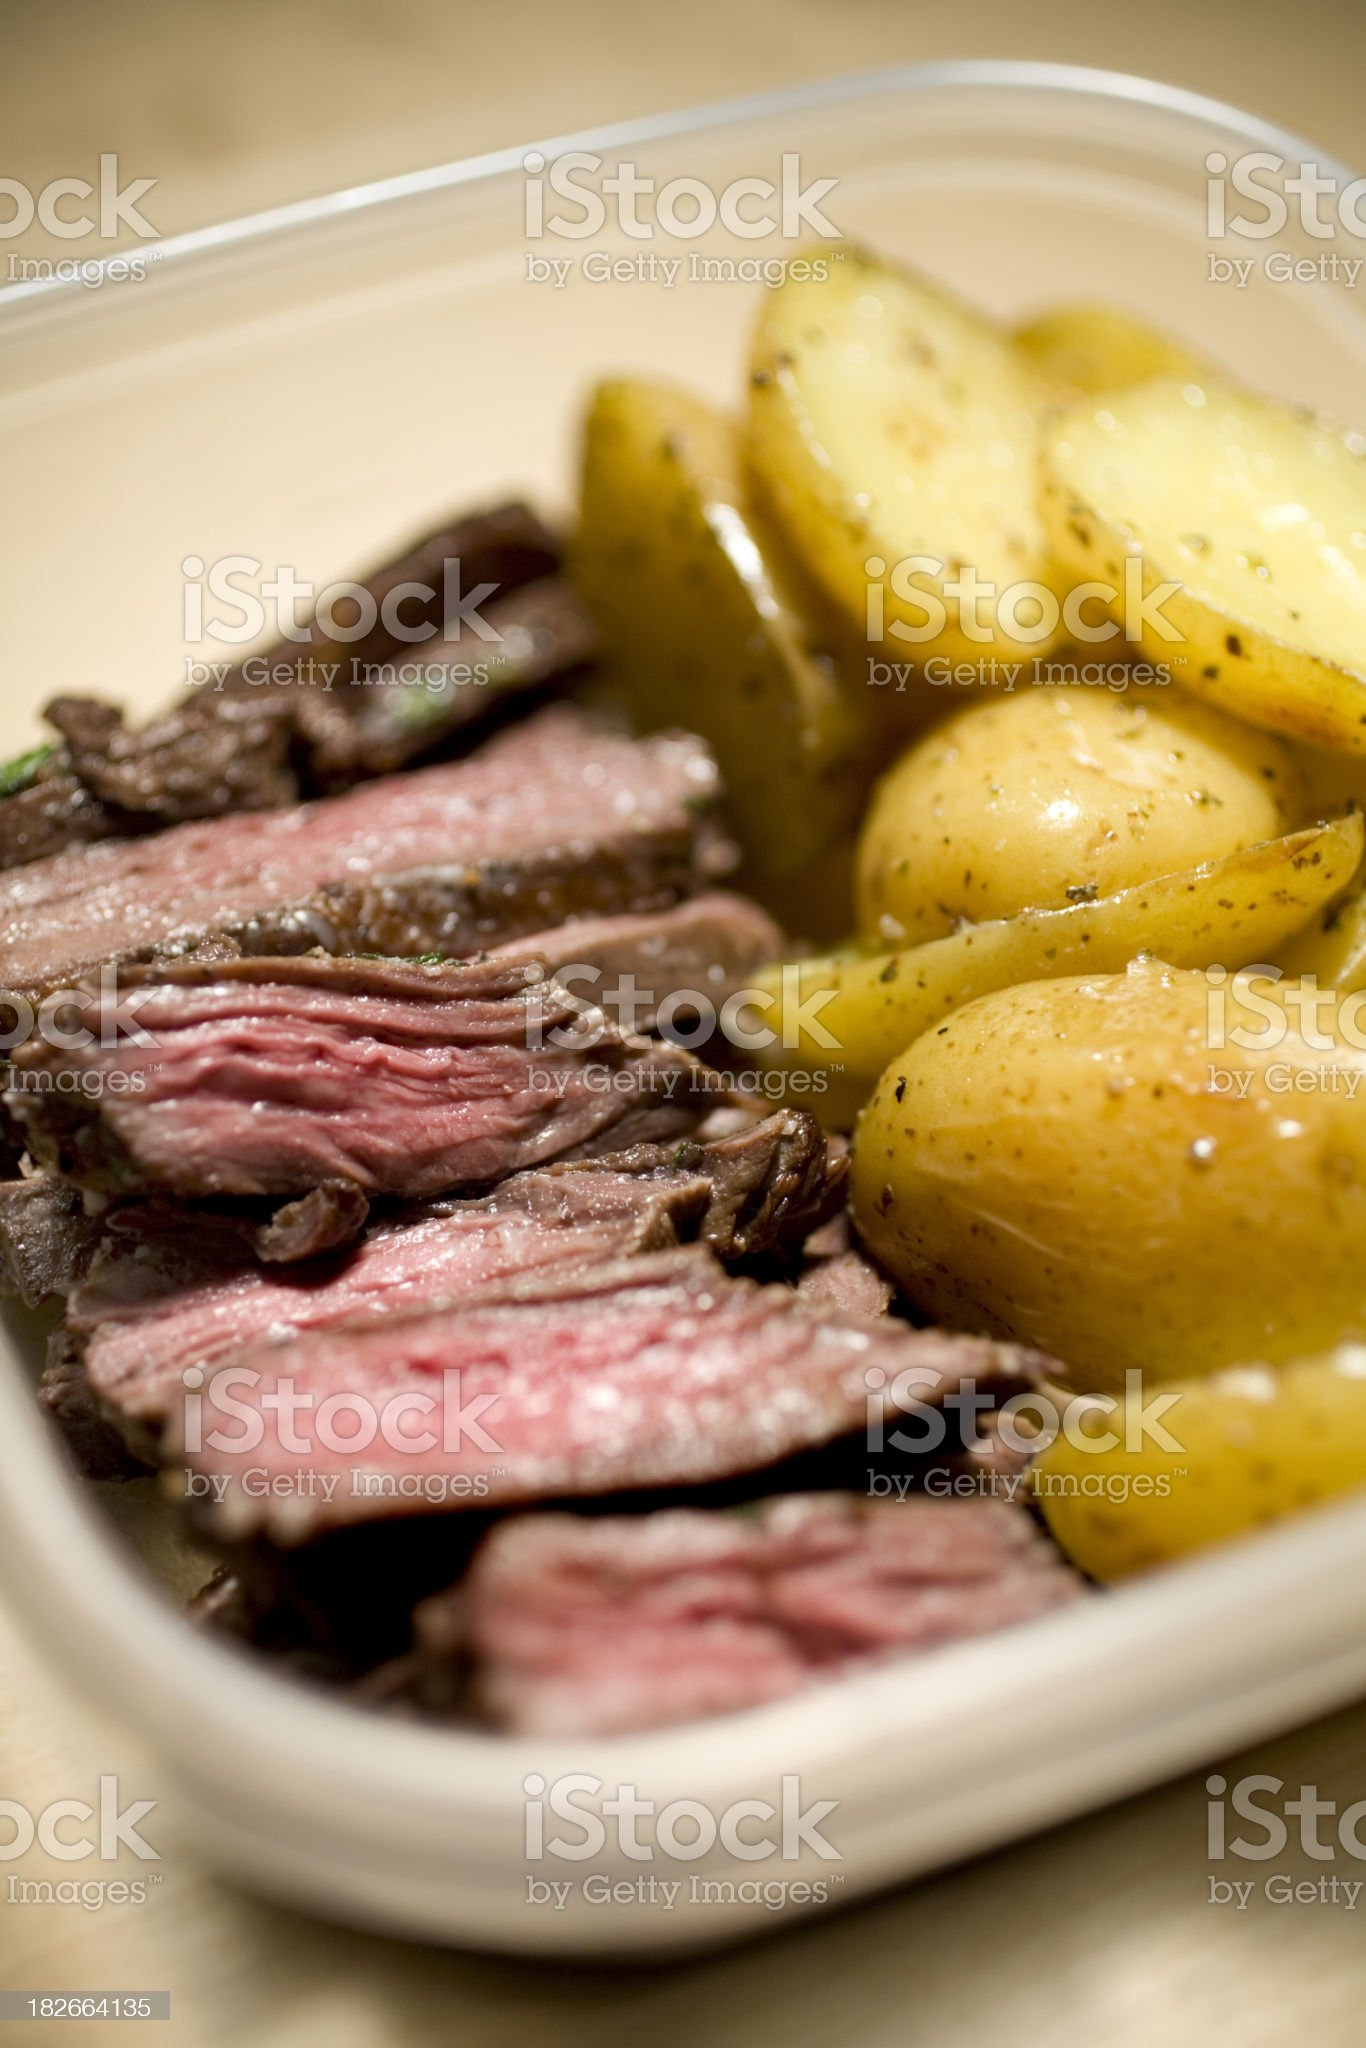 steak leftovers royalty-free stock photo